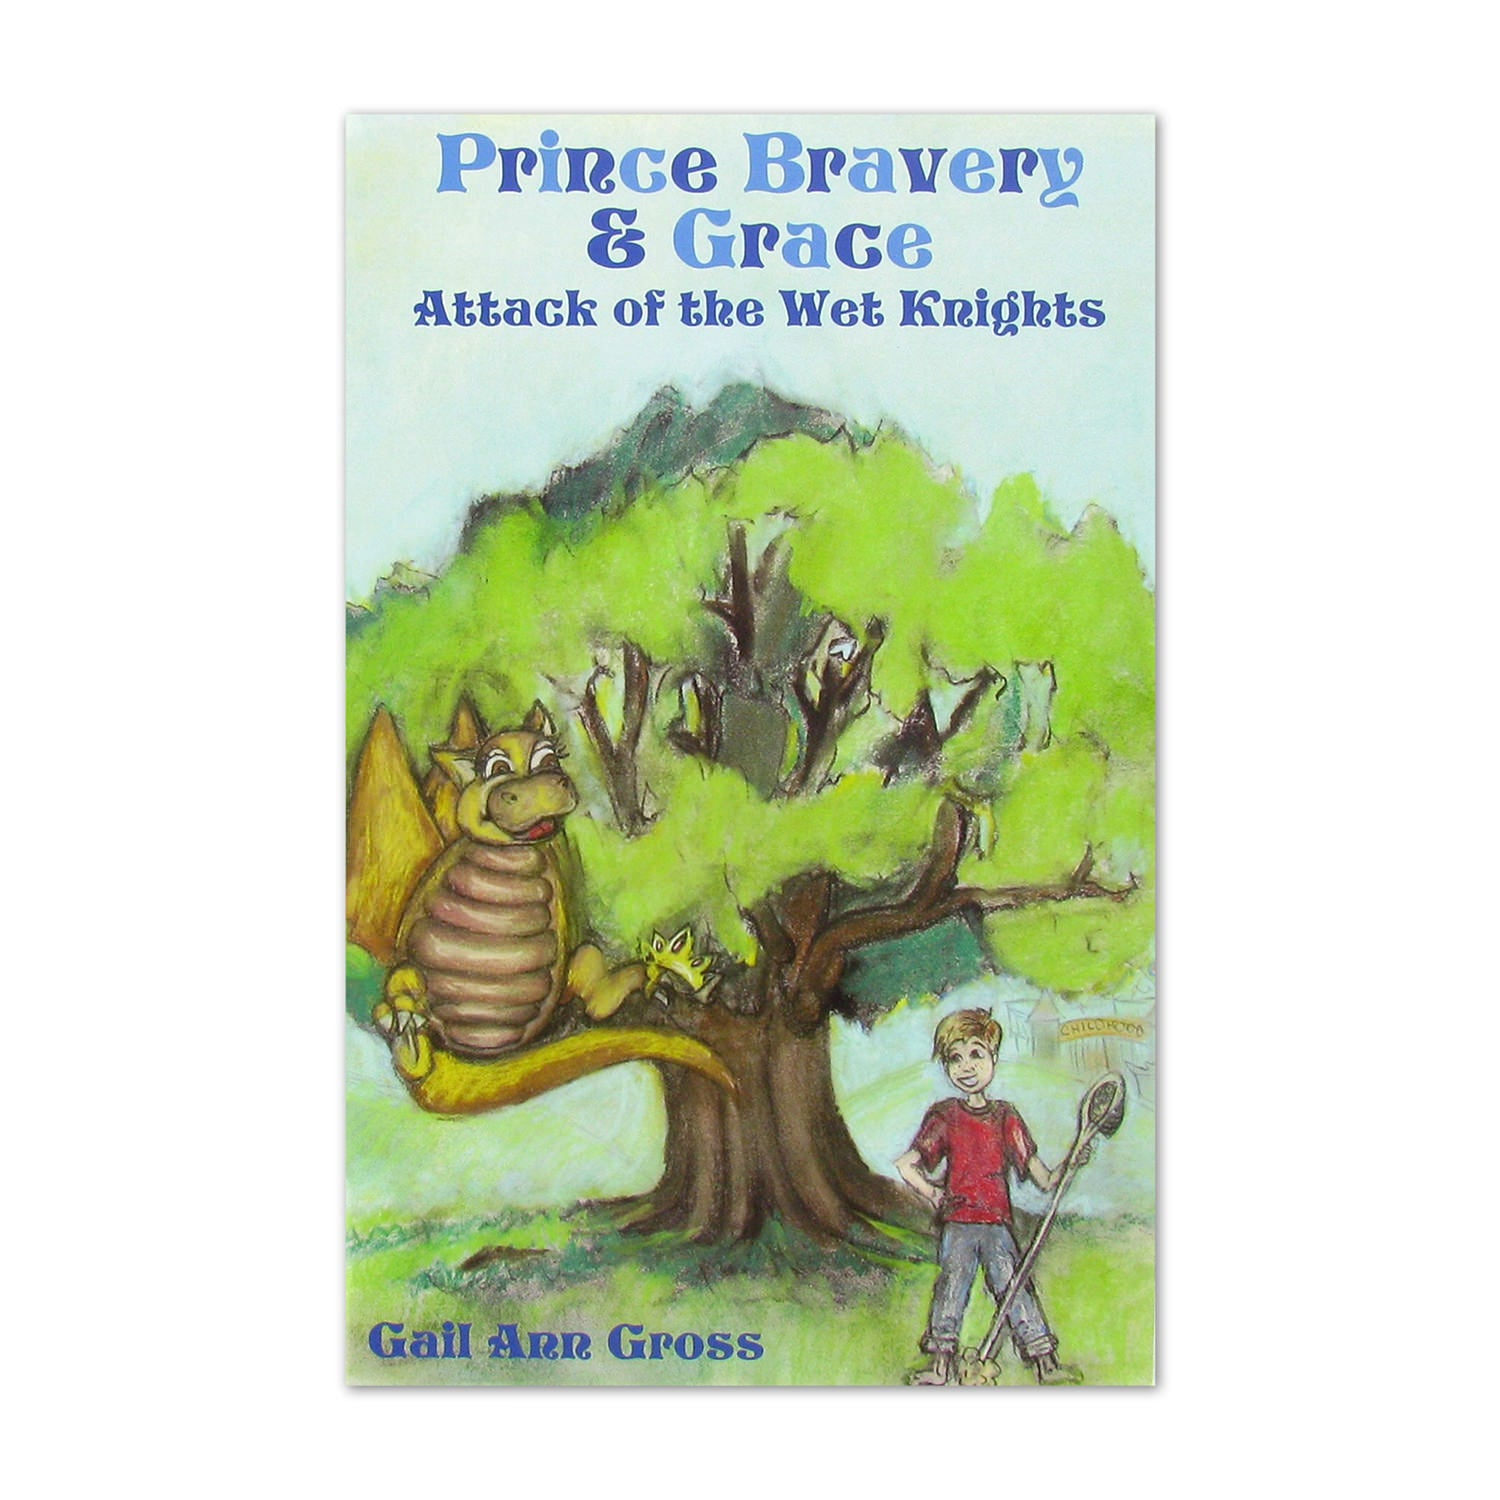 Books-Prince Bravery & Grace: Attack of the Wet Knights